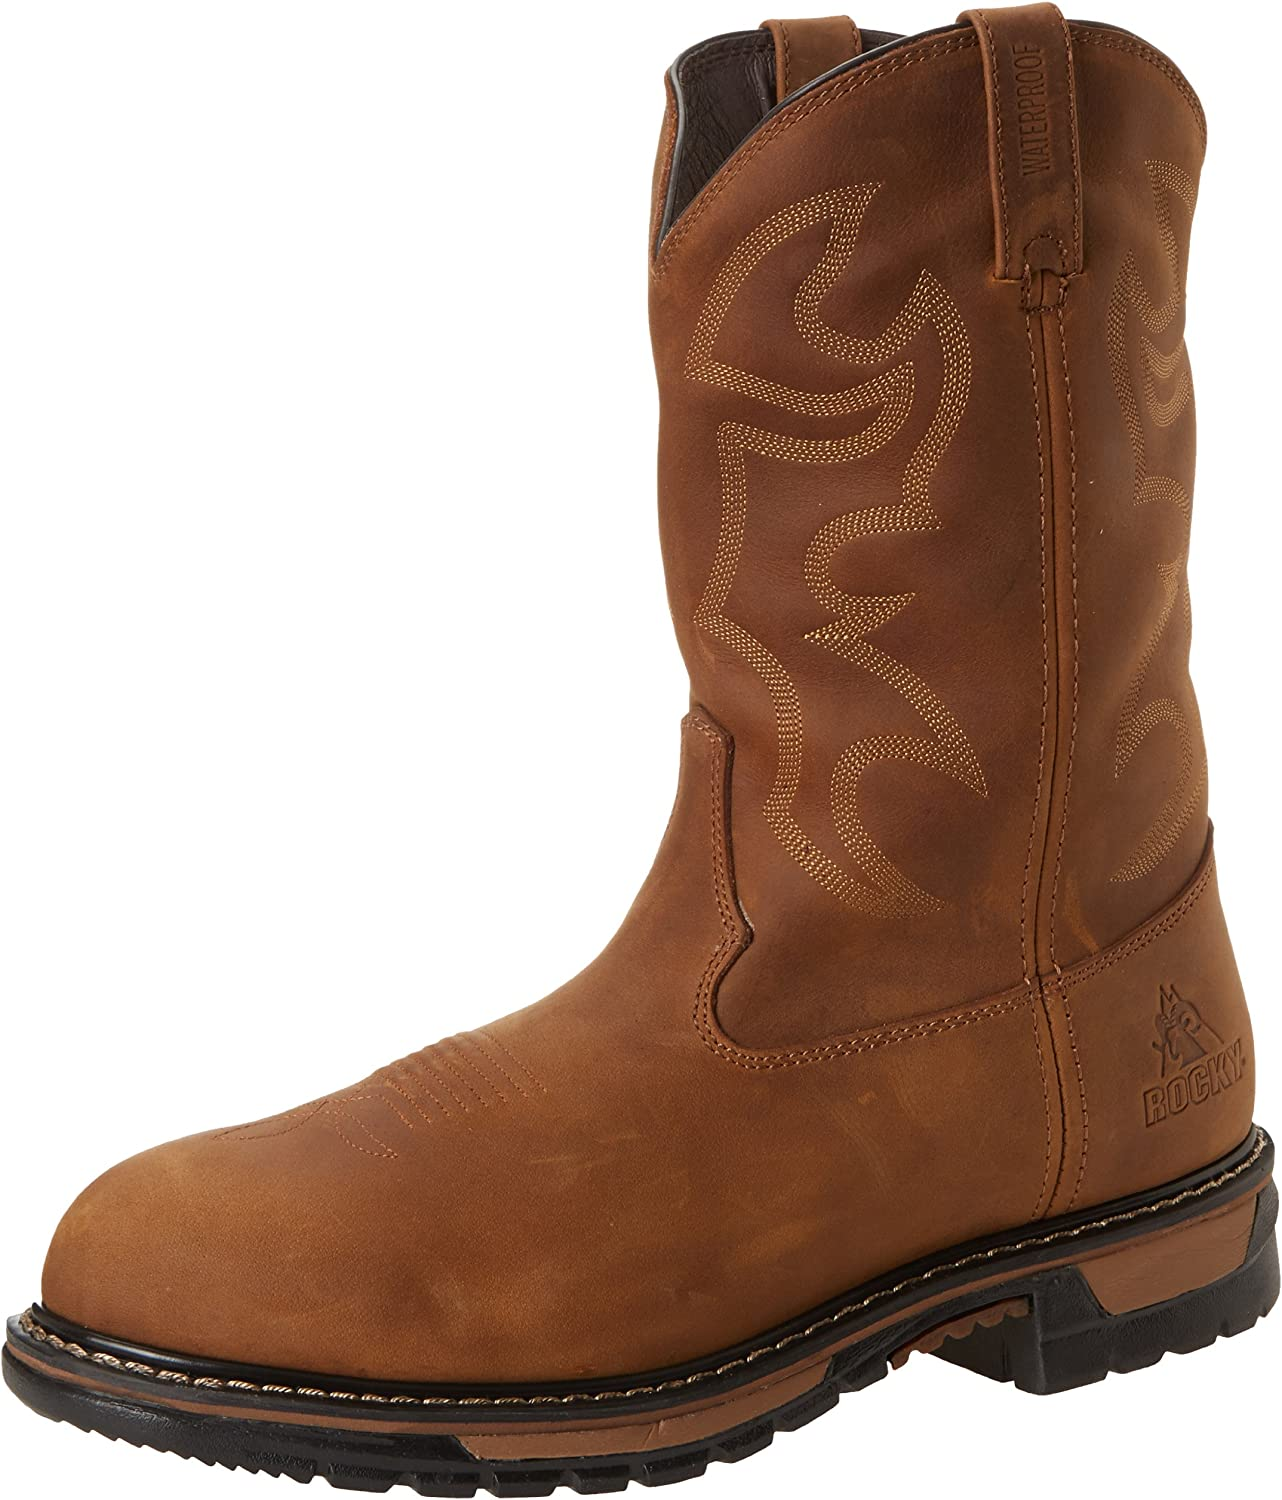 SEAL limited product Rocky Men's Fq0002733 Reservation Boot Western